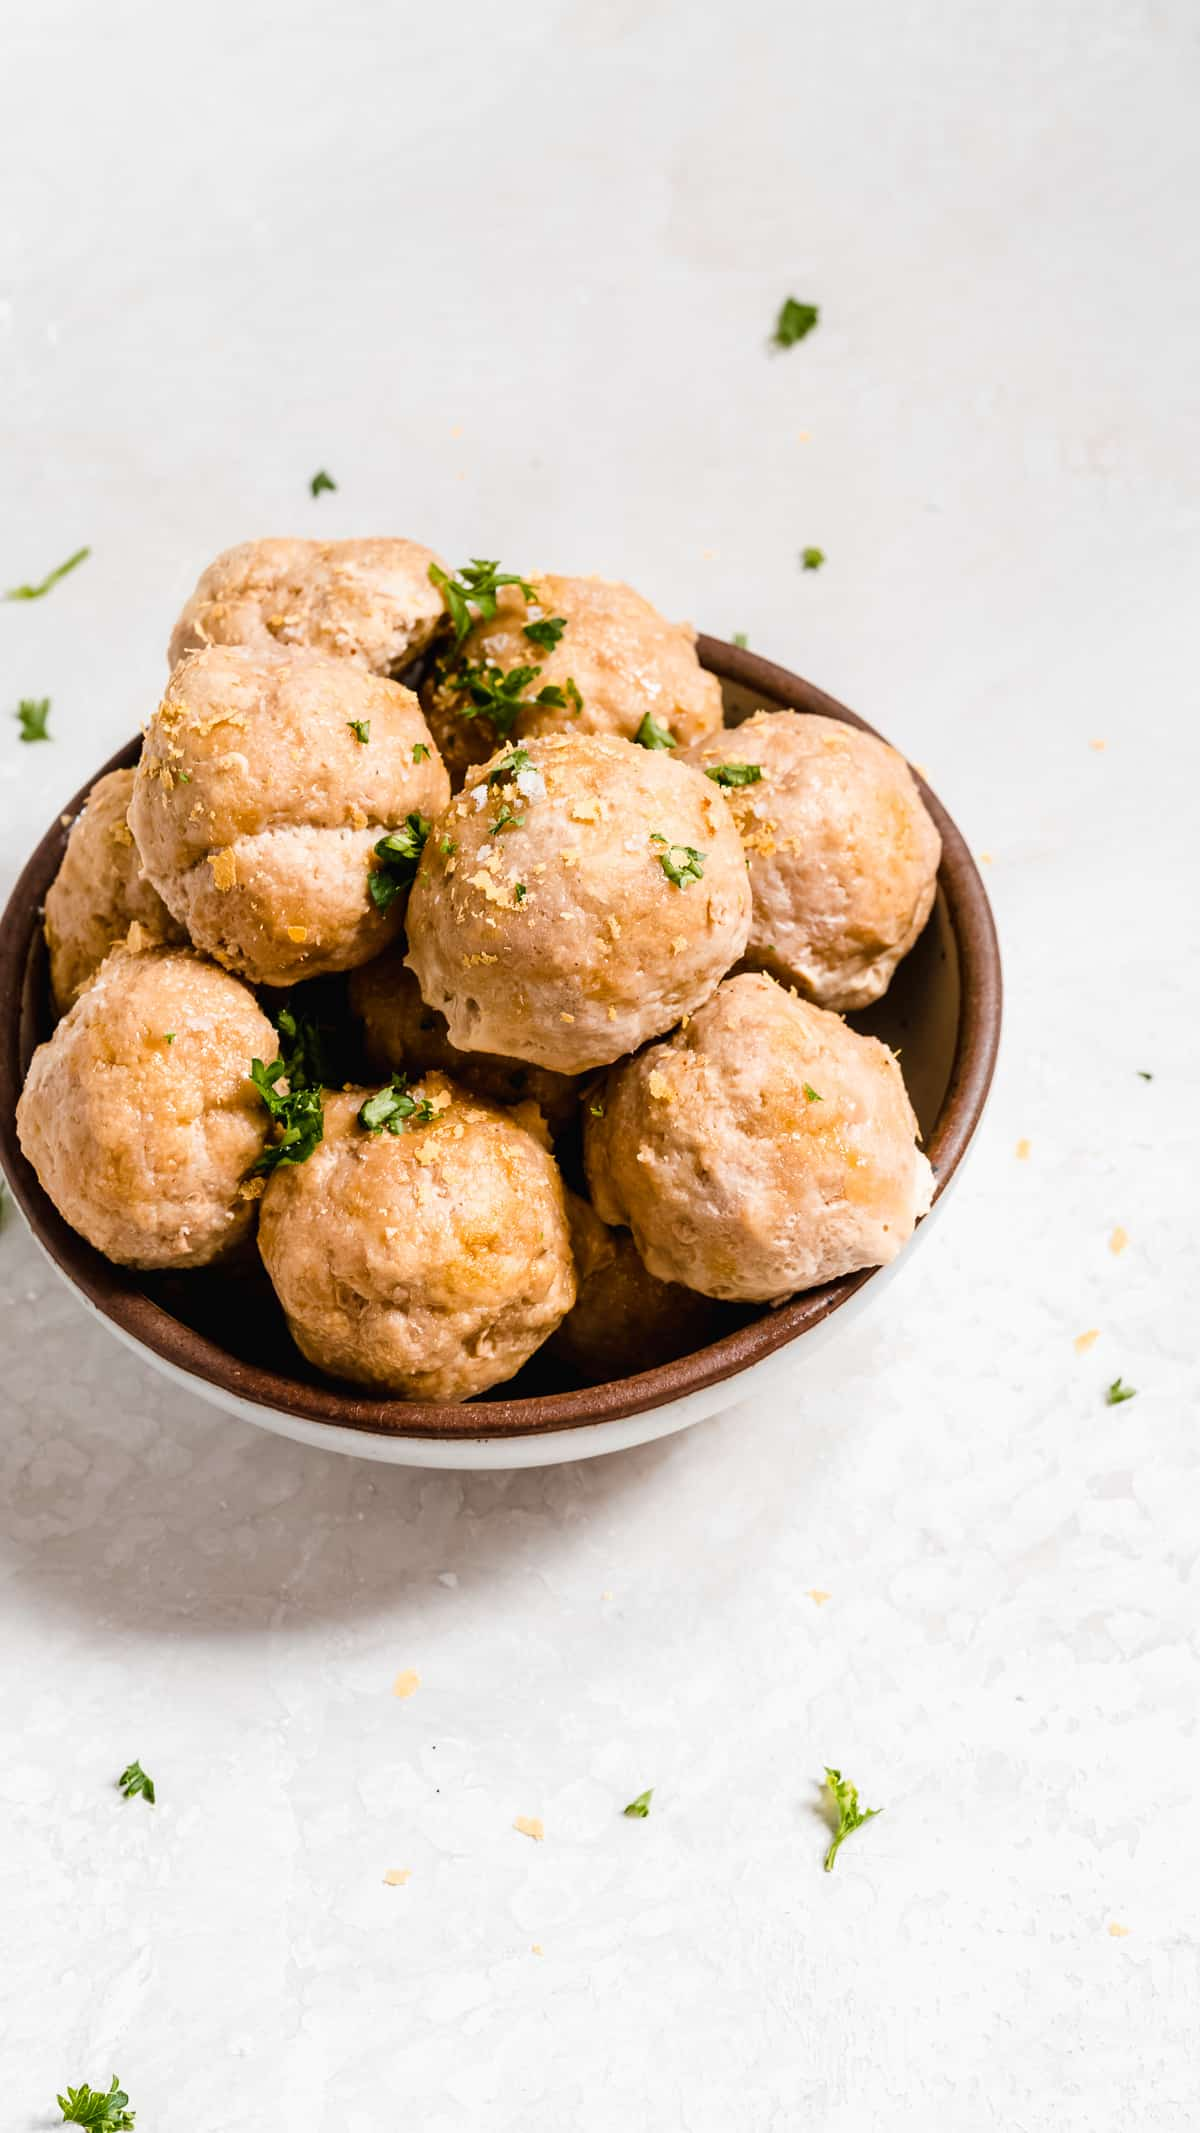 Brown bowl of turkey meatballs with green herbs on a white surface.